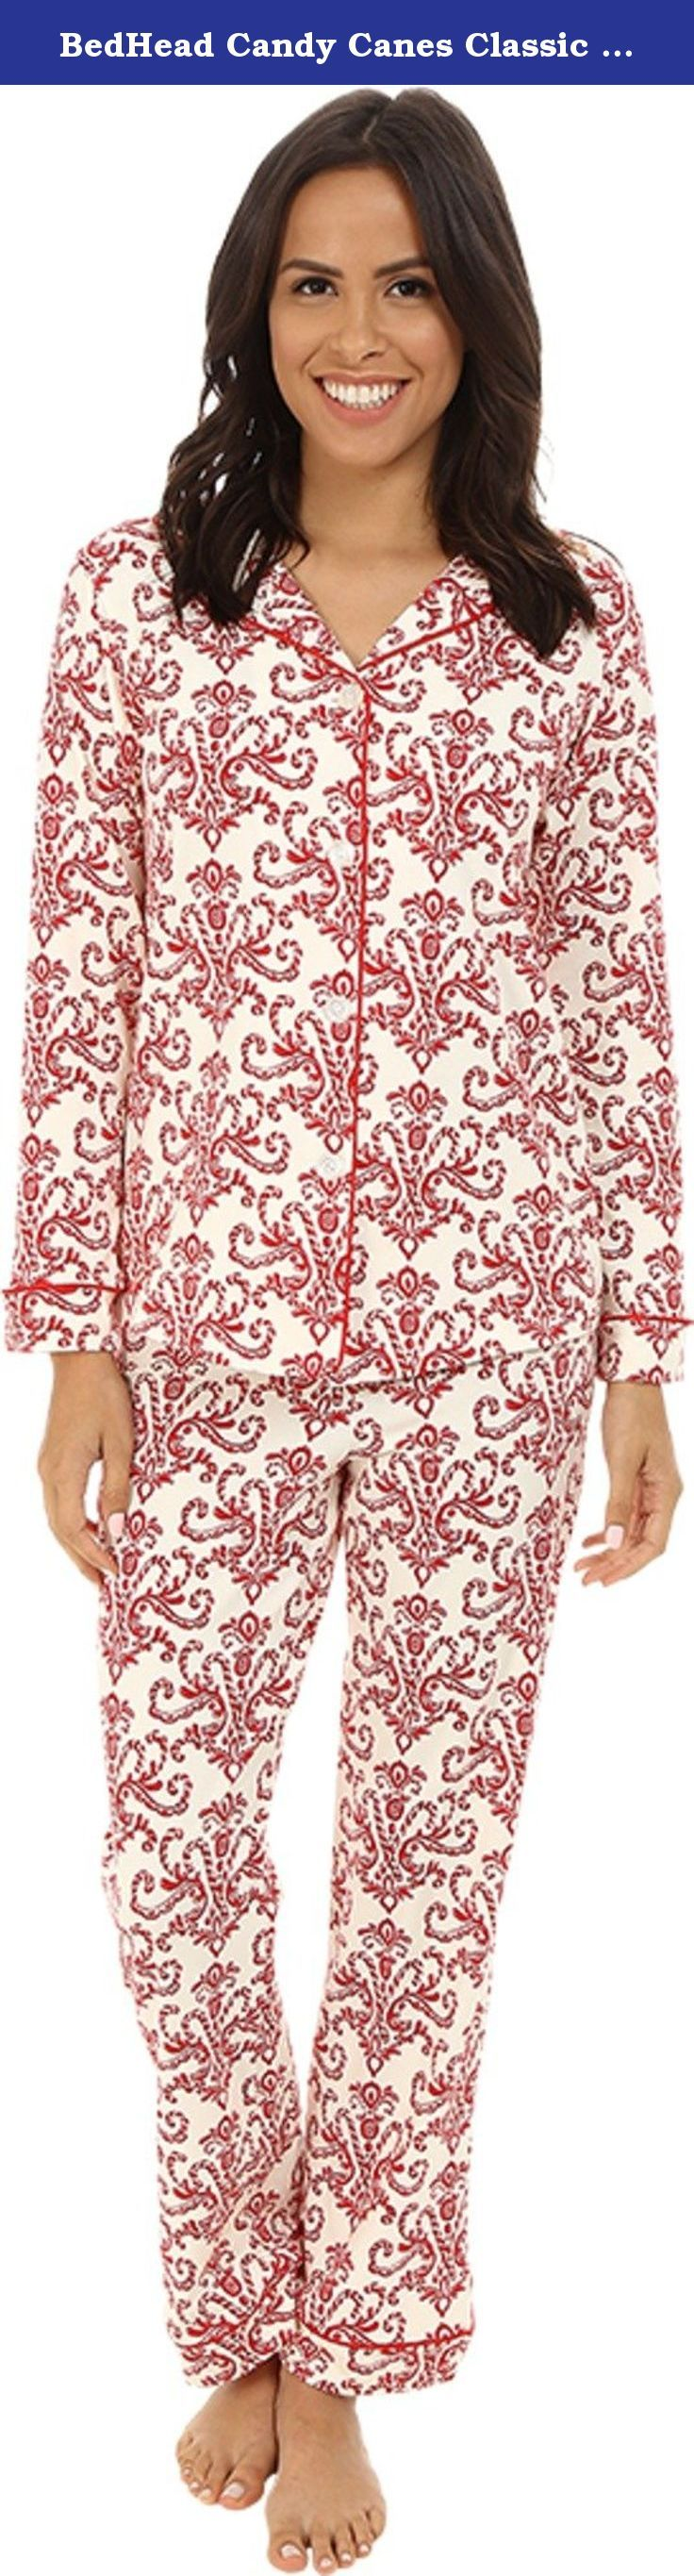 BedHead Candy Canes Classic Stretch Made in USA PJ Set (XS, Red). Gloriously soft - like your favorite T-shirt - with the added benefit of lounge-friendly stretch. The sweet holiday print elevates nightwear to a new level of comfort and style. And they're fairly made in Los Angeles, which makes them both glamorous and a great way to keep Americans on the job.